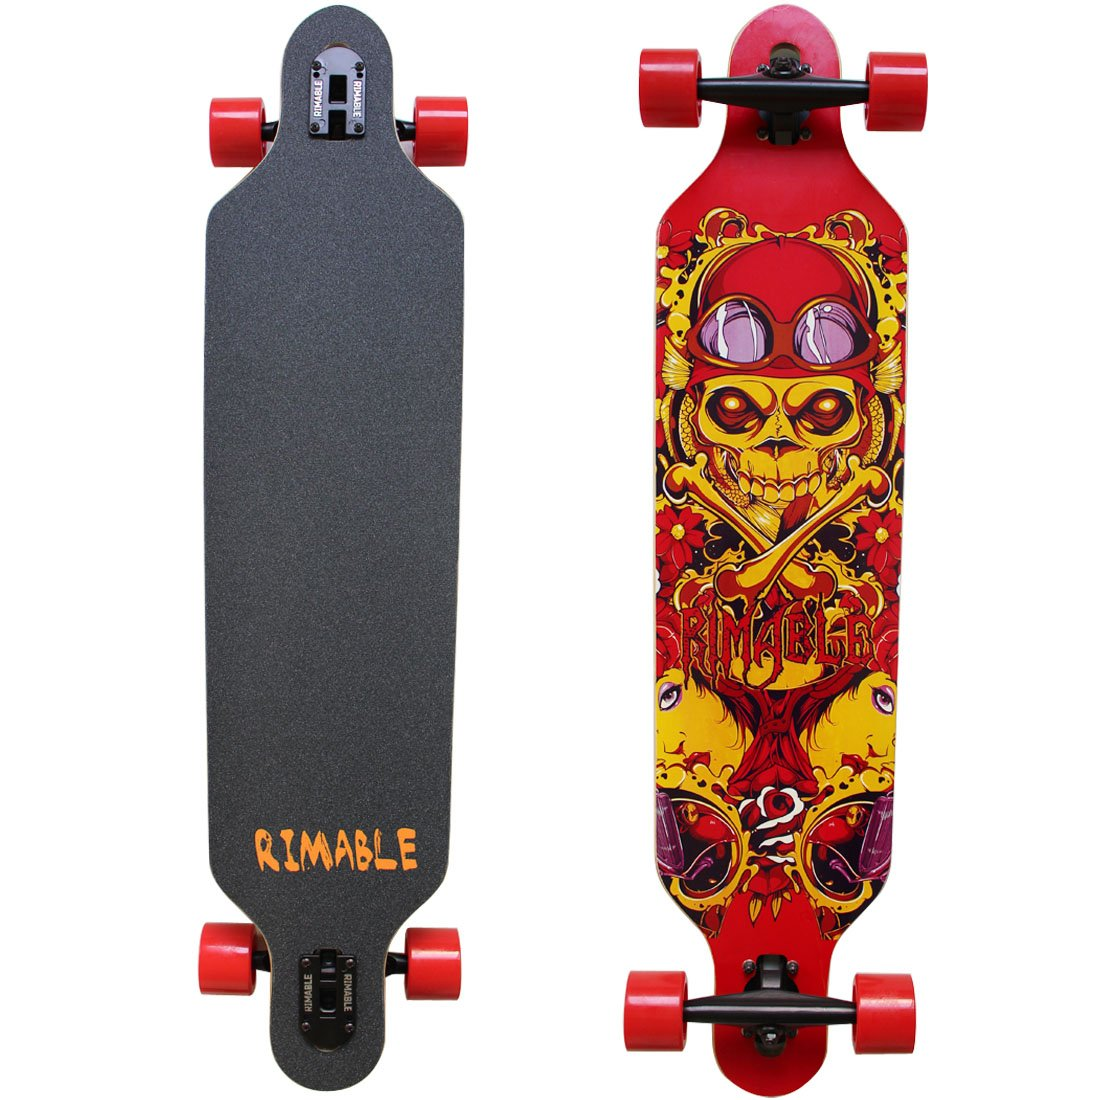 RIMABLE Drop-through Longboard 41Inch (Red Skull)